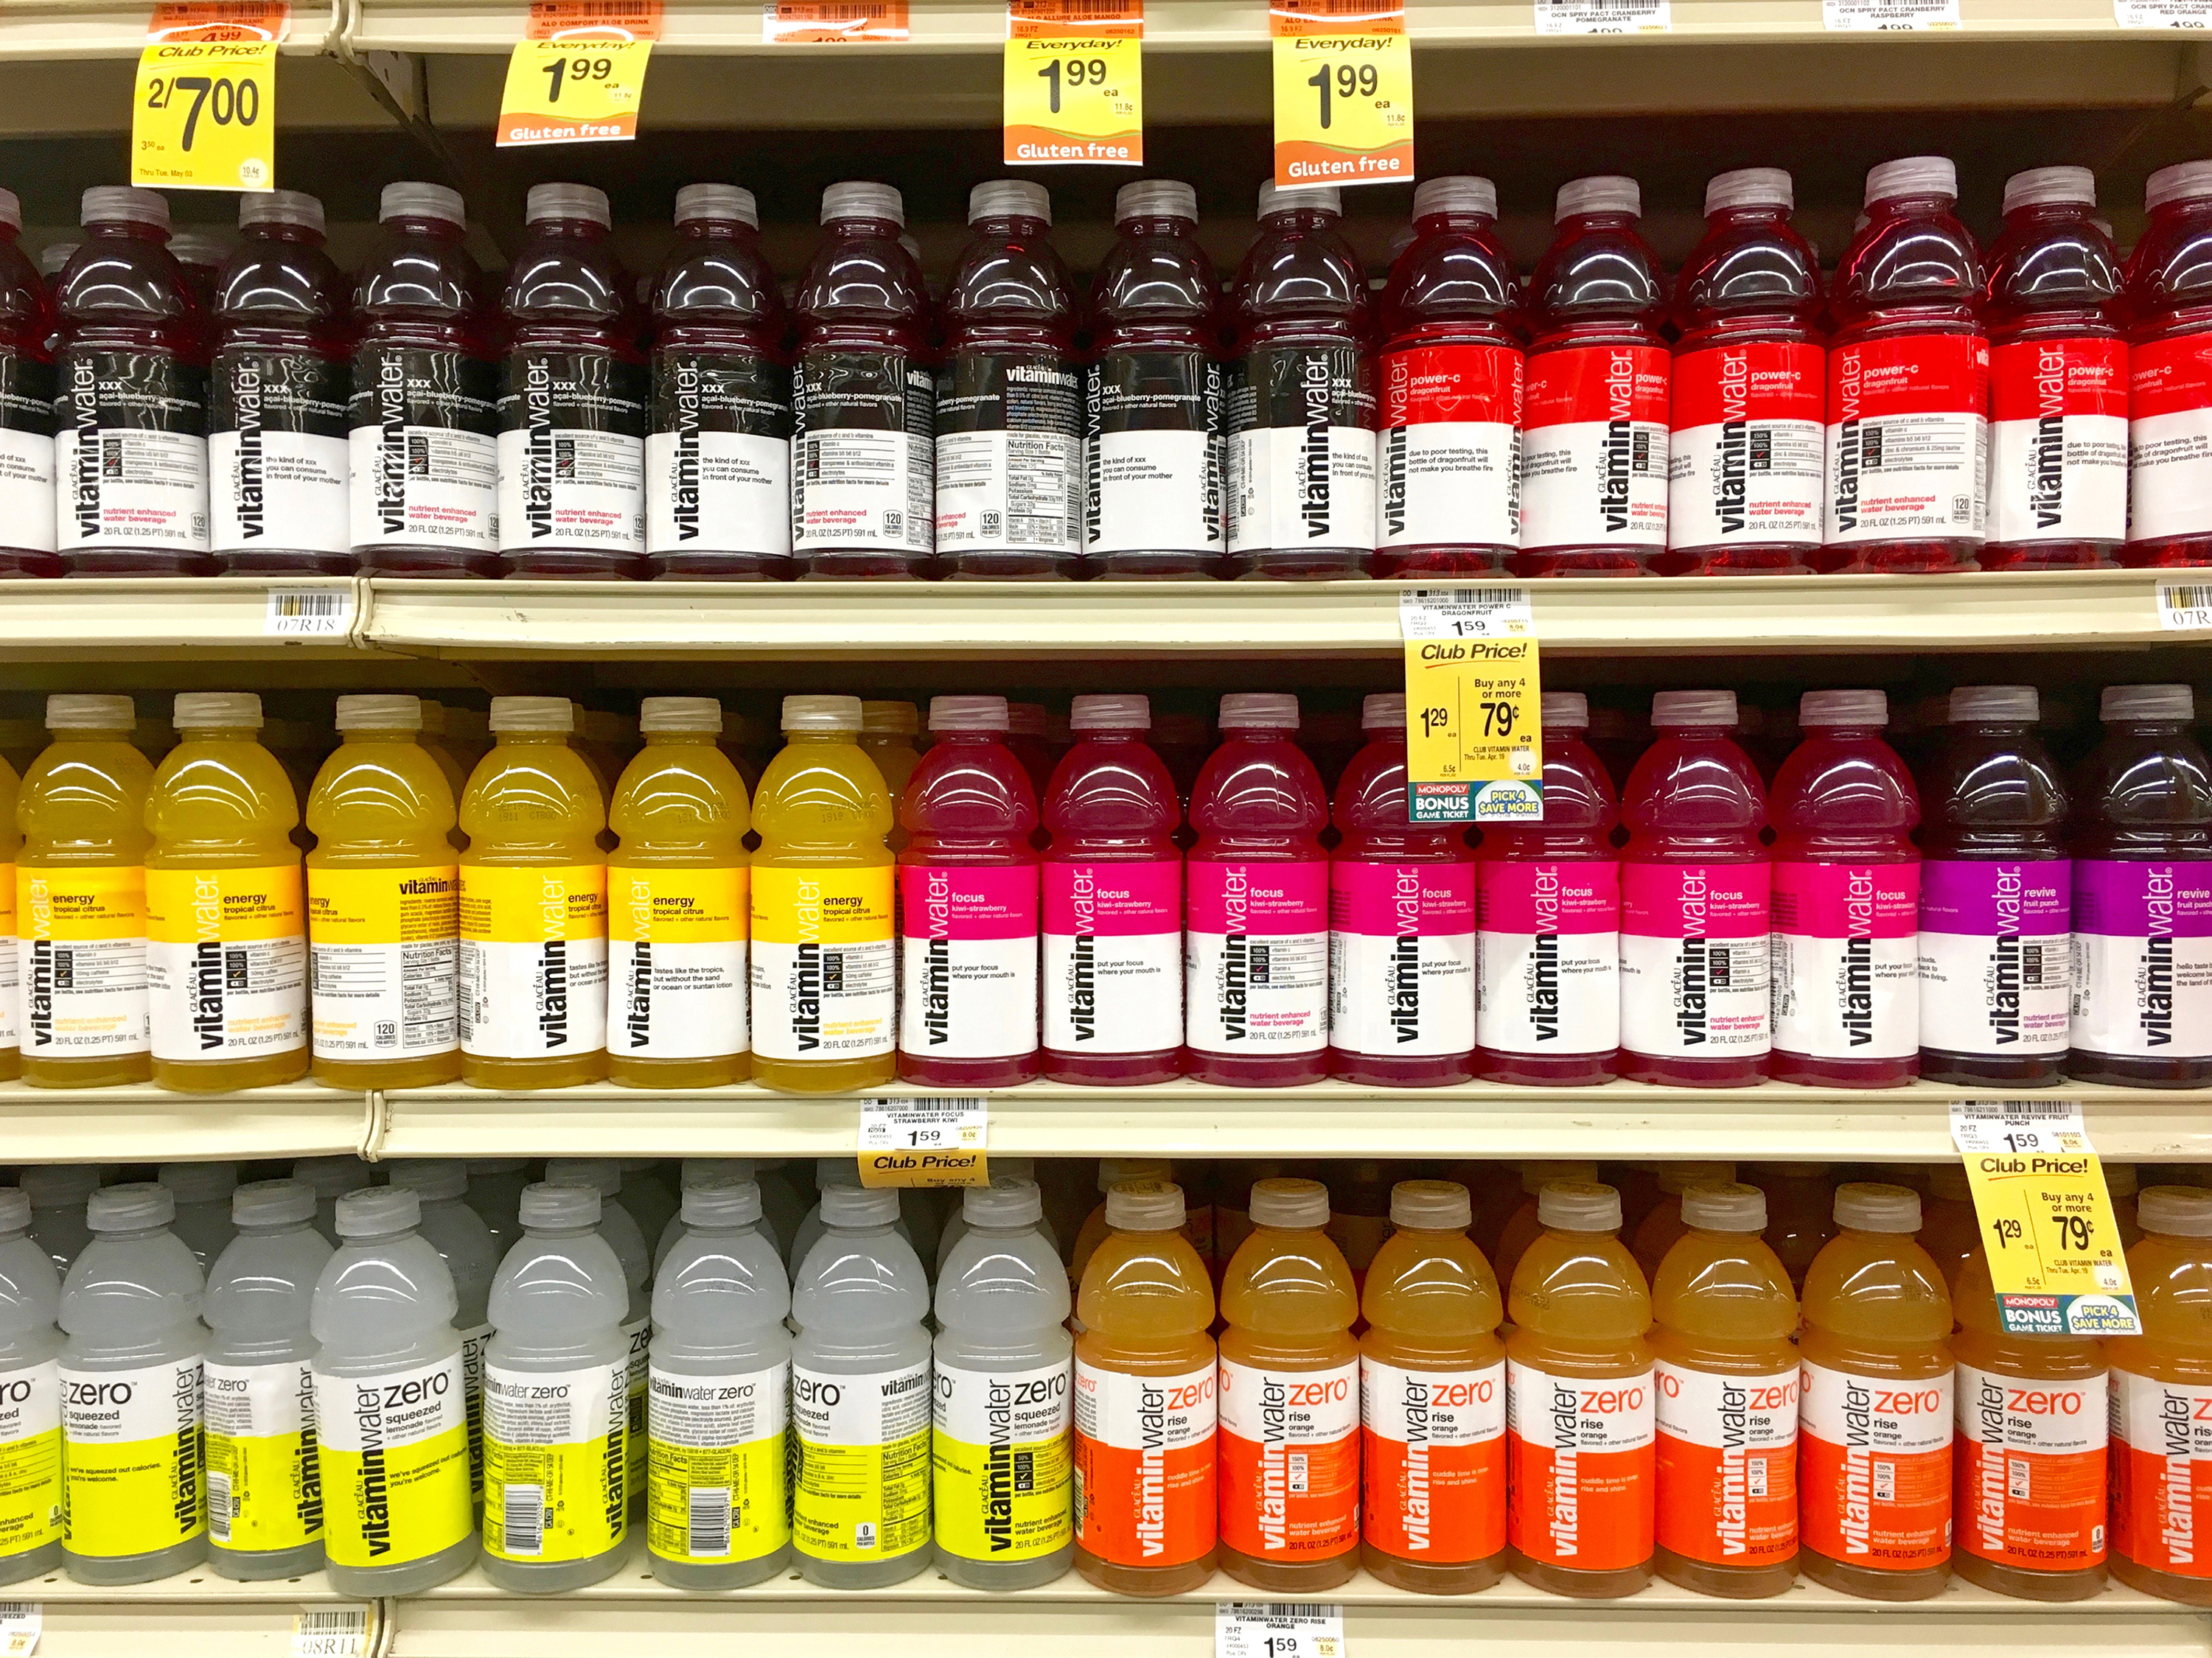 cpg market research vitamin water